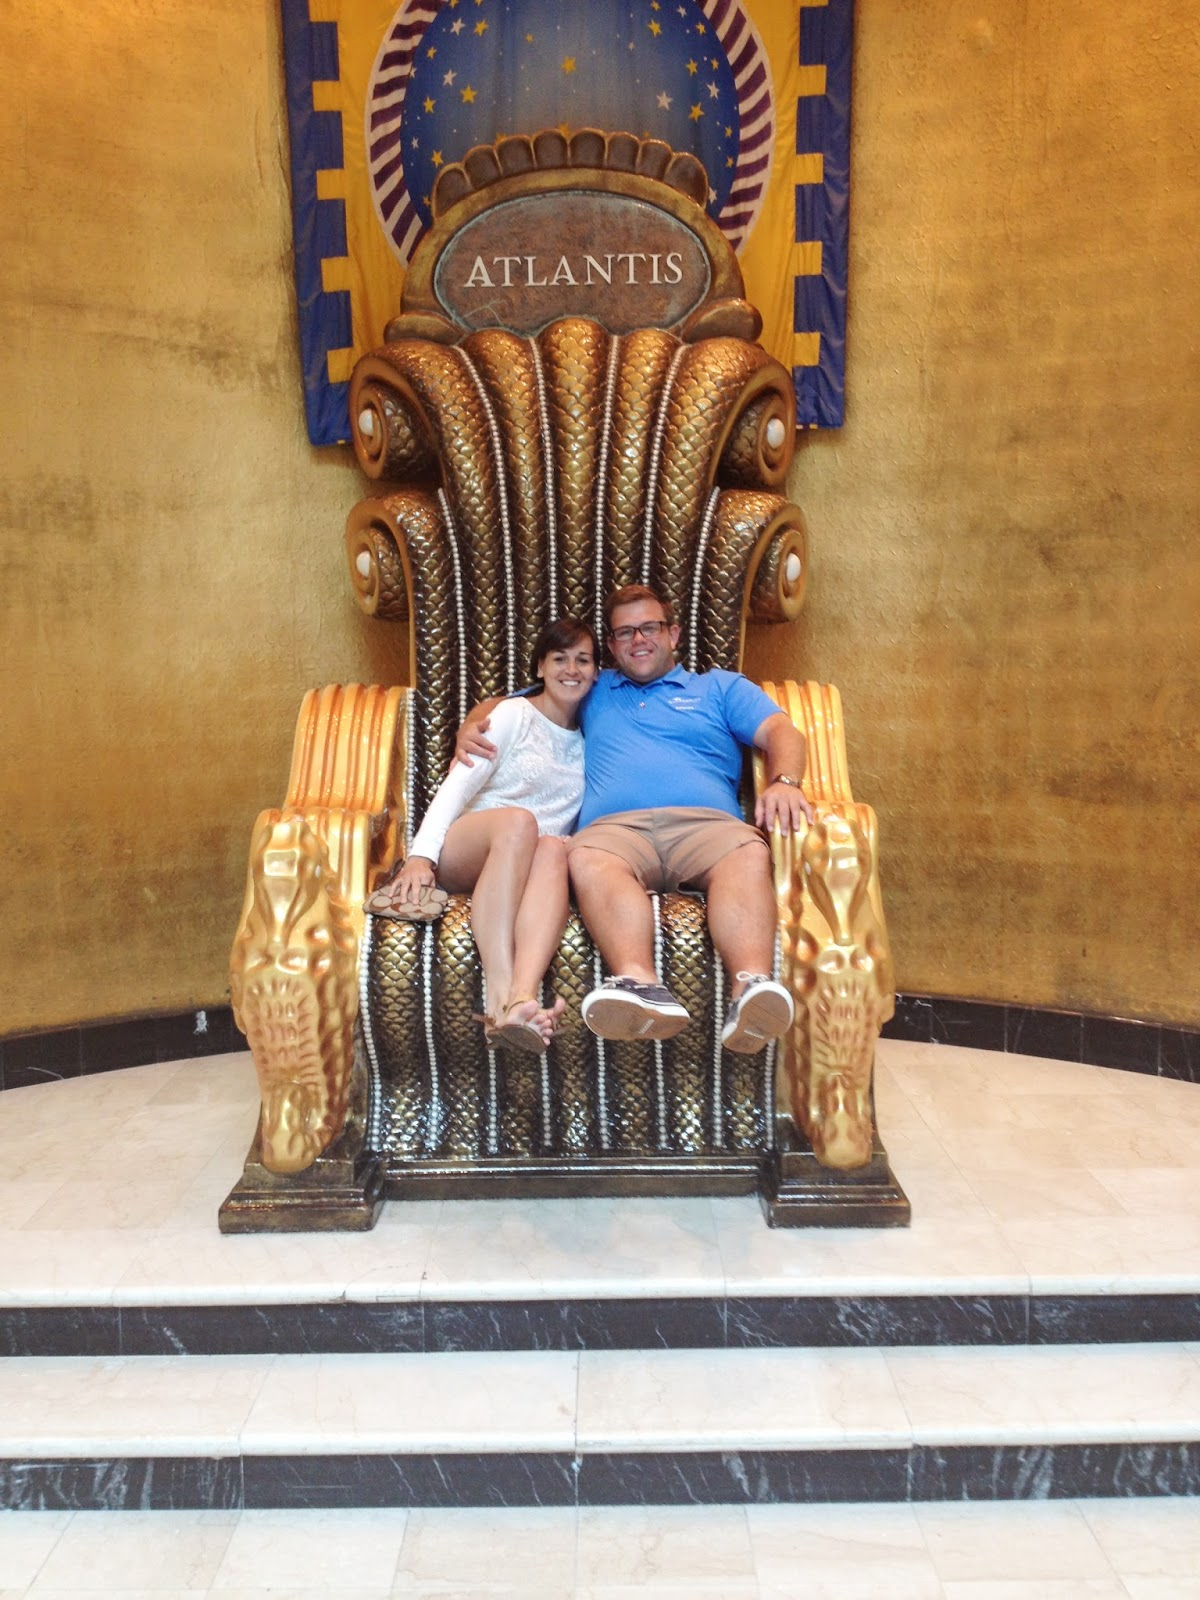 Us At Atlantis